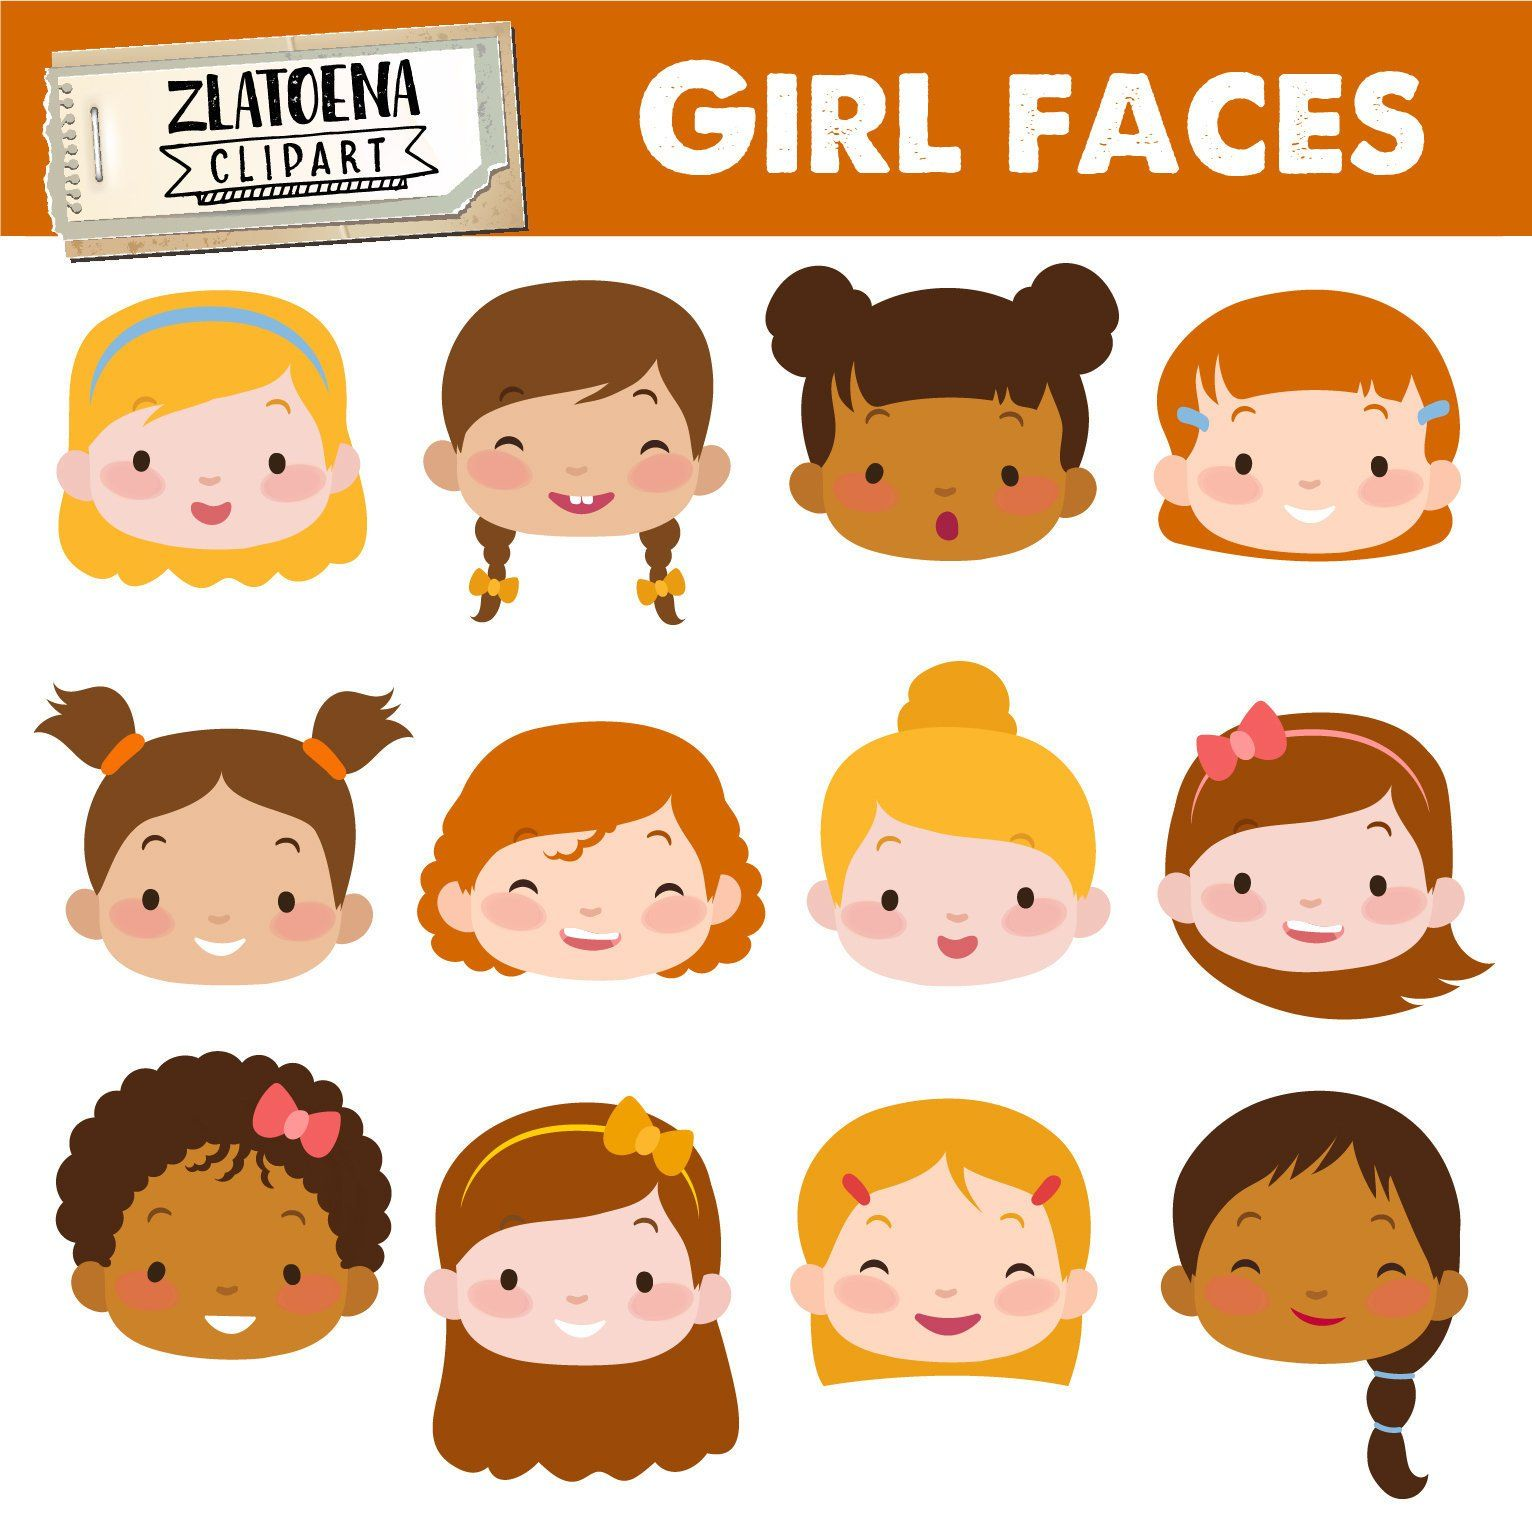 Face clipart girl graphic black and white download Cute Girl Faces clipart Kids Faces Digital Clipart Cute Kids Clip ... graphic black and white download